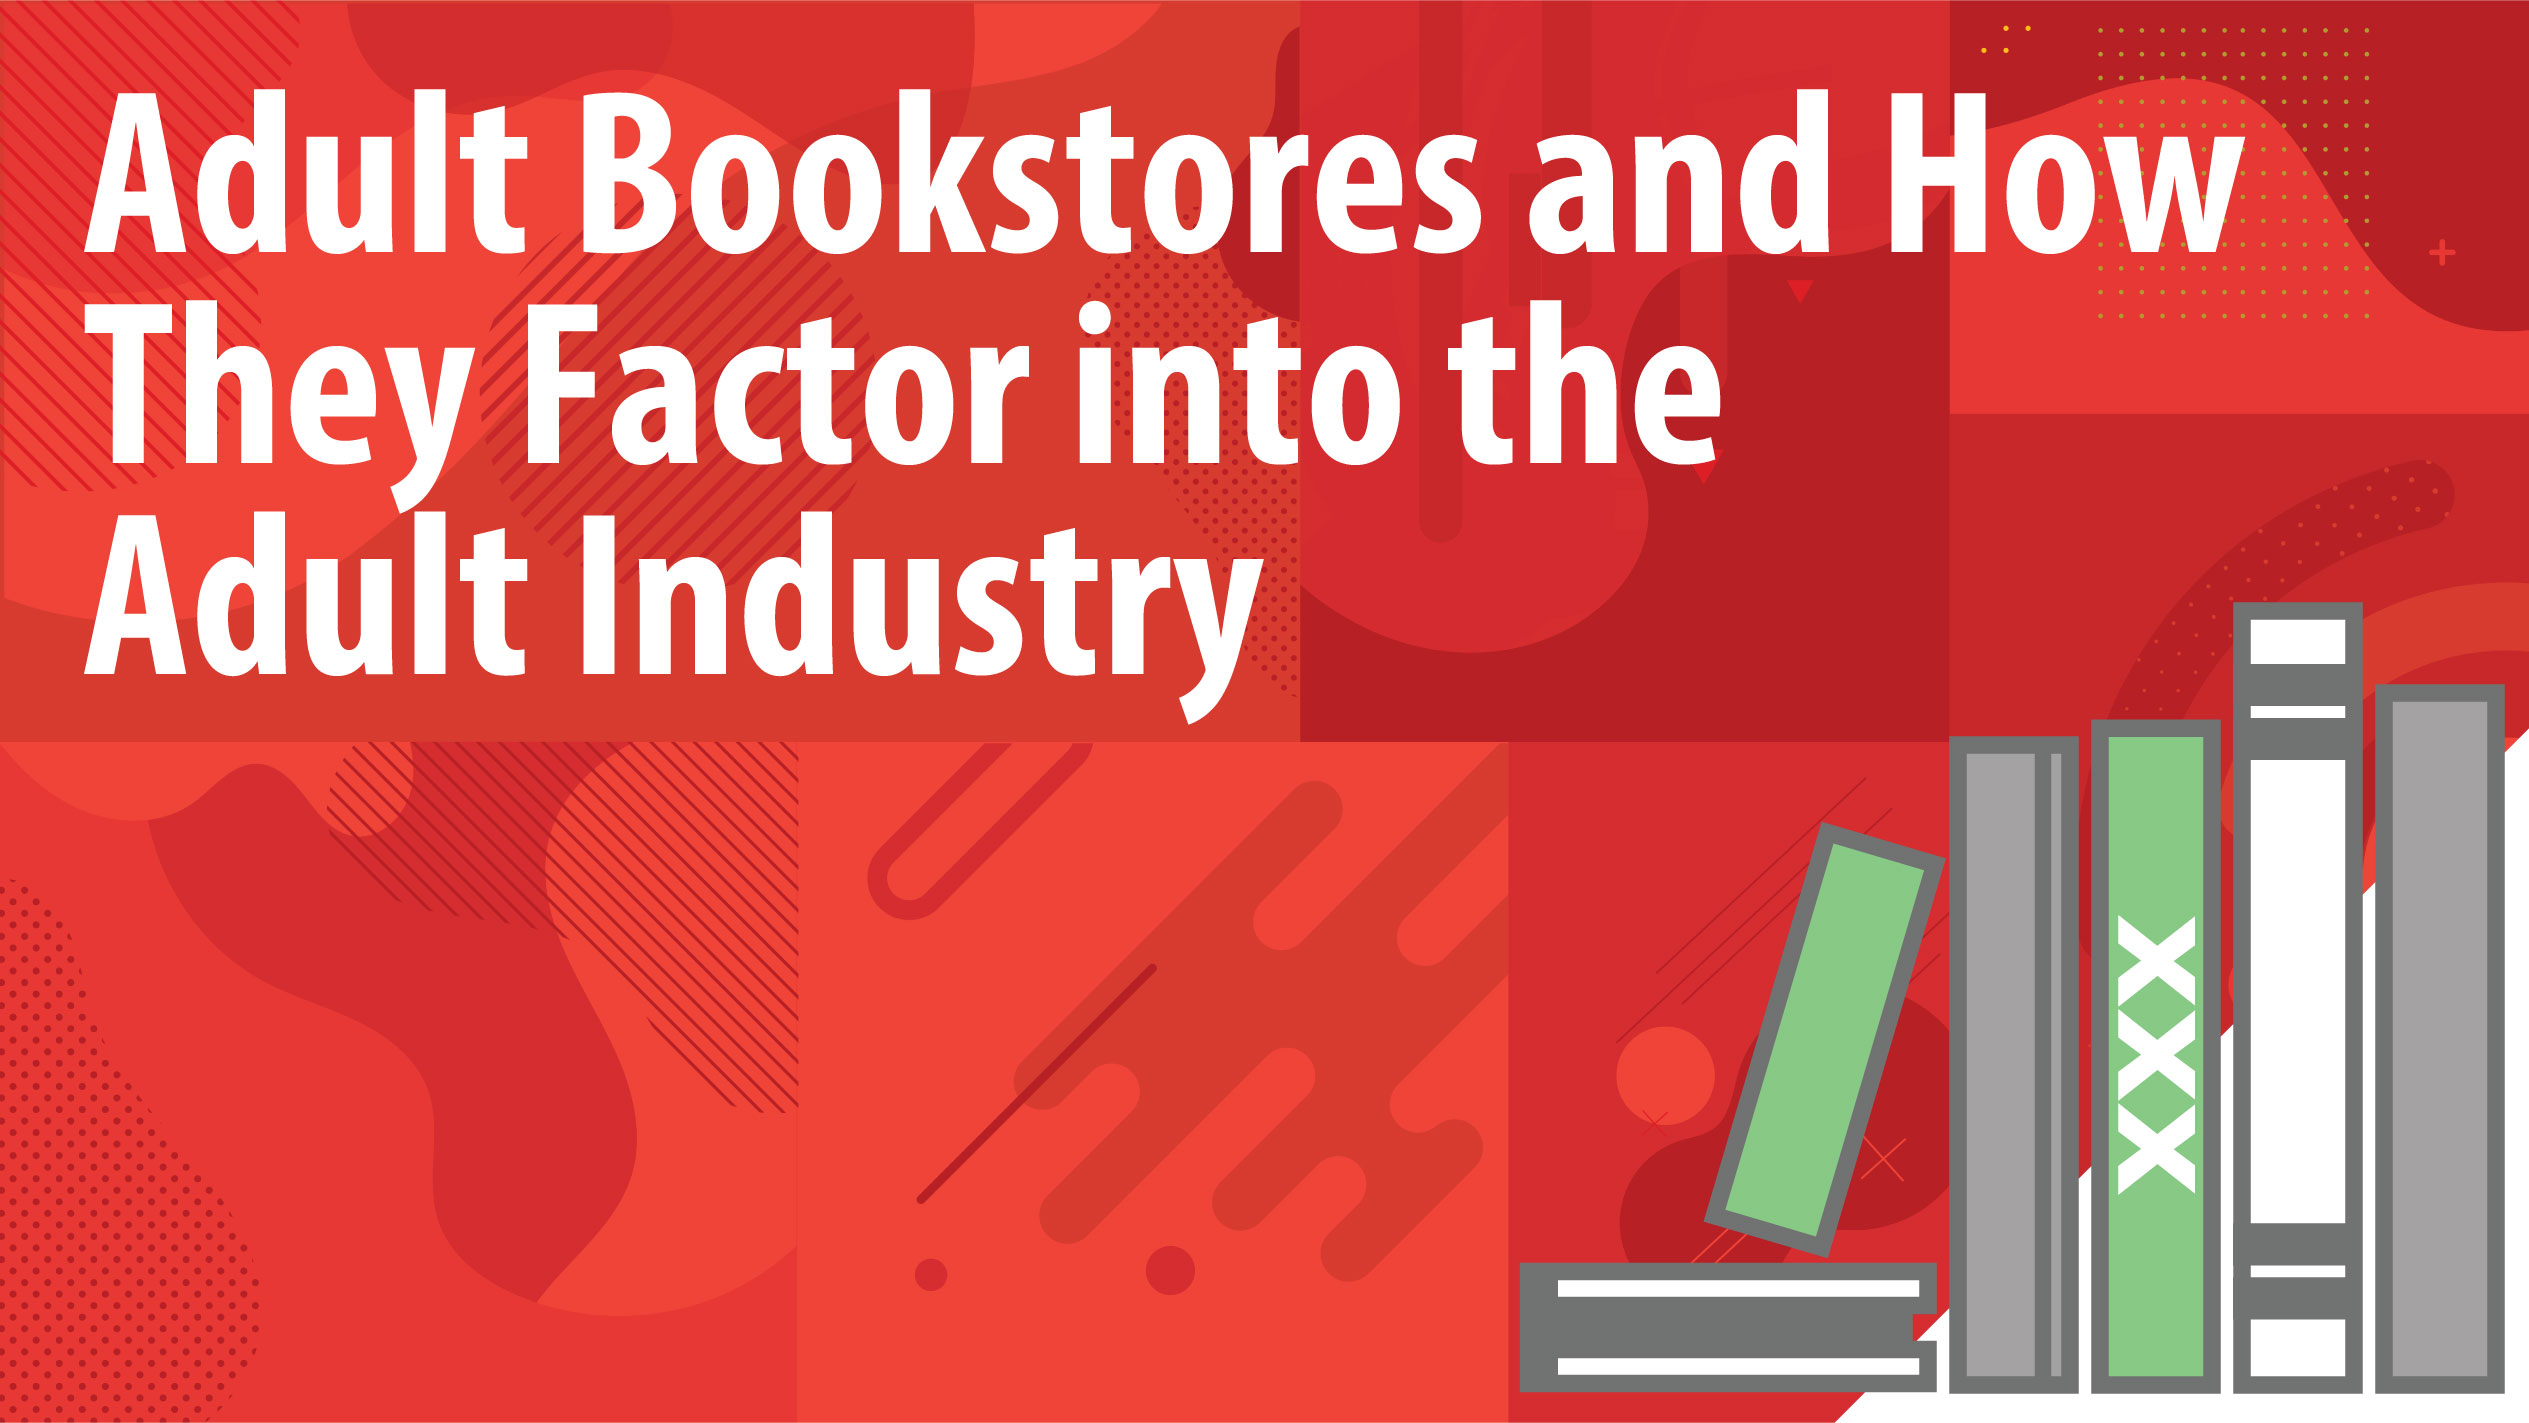 Adult Bookstores and How They Factor into the Adult Industry